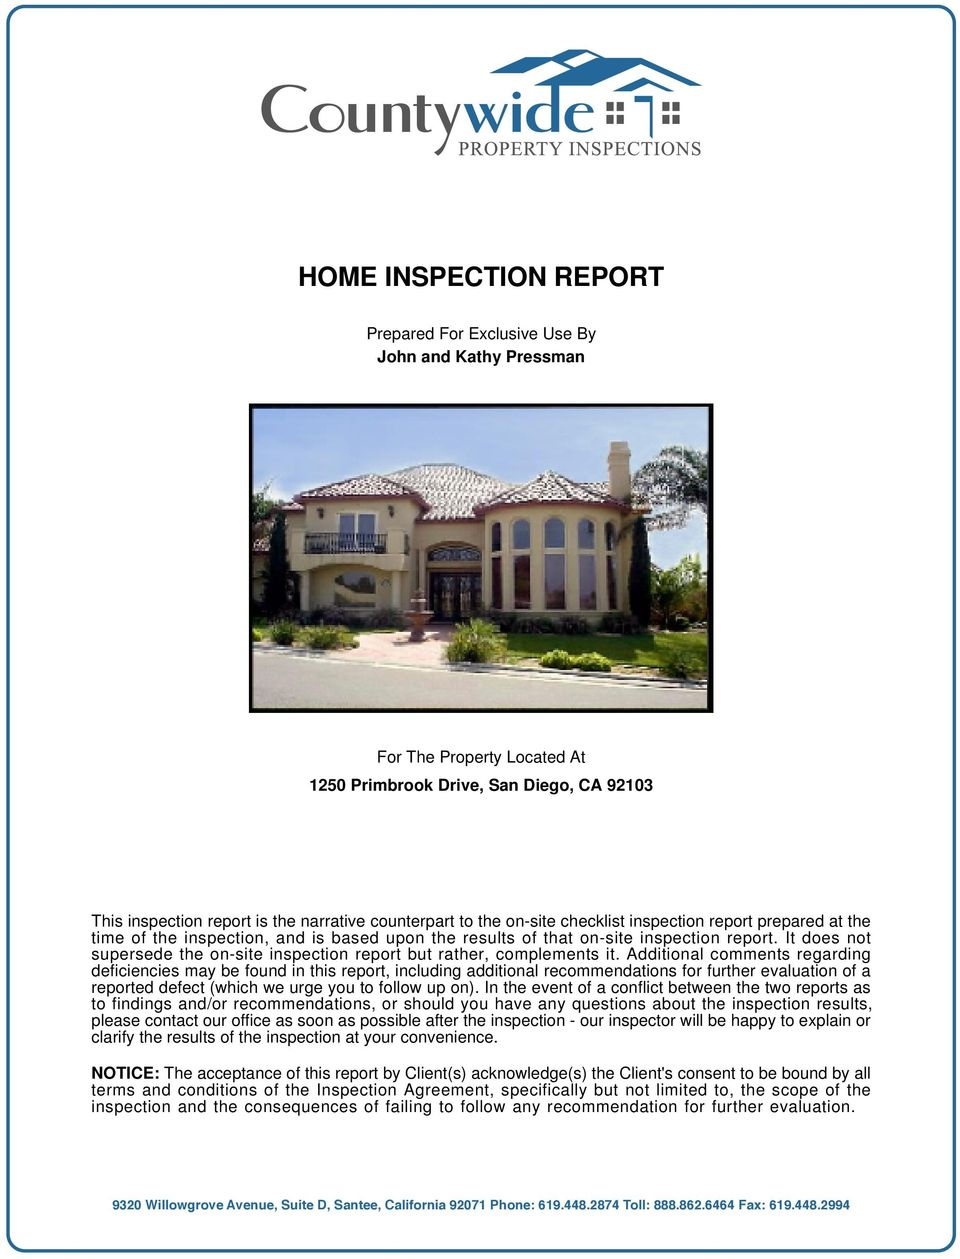 It does not supersede the on-site inspection report but rather, complements it.